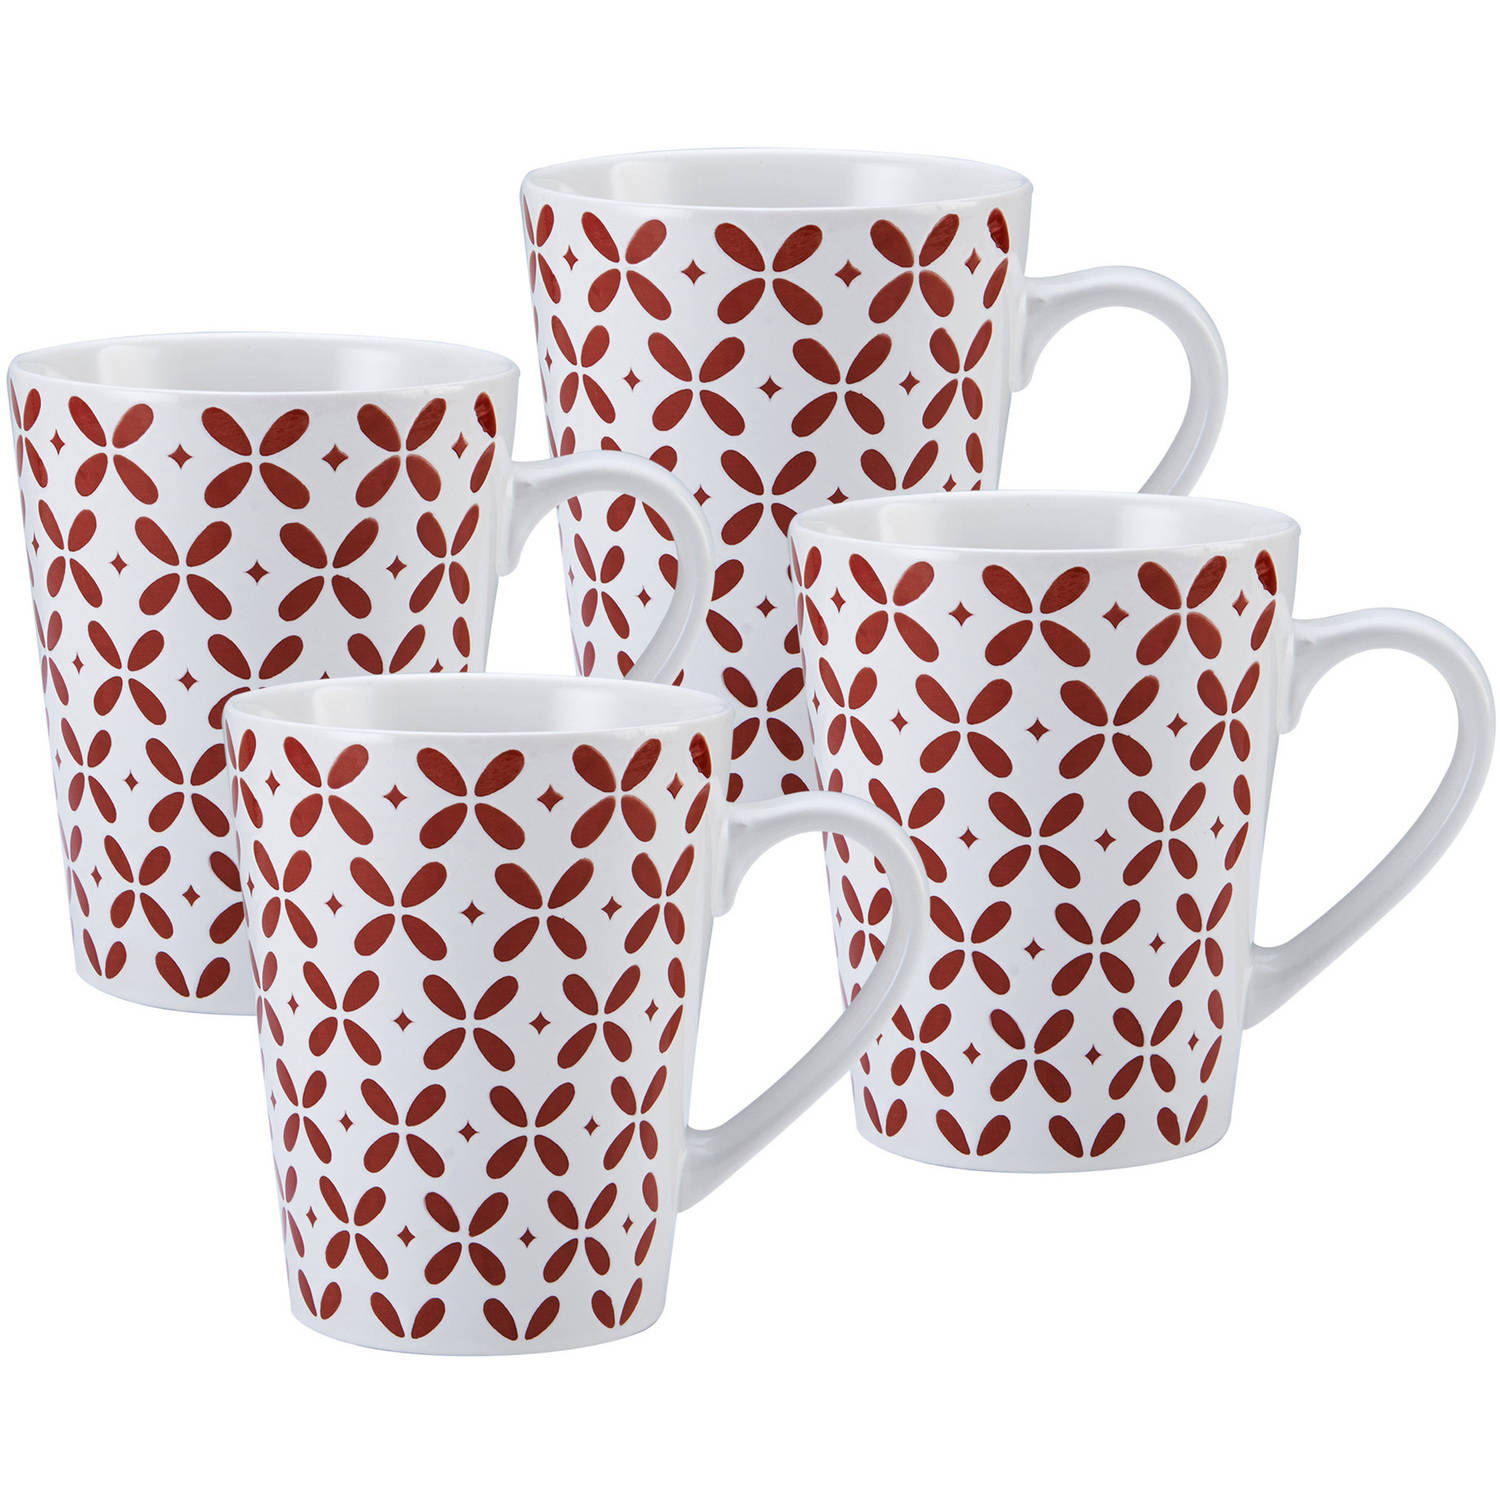 Pfaltzgraff Set of Four 27 Ounce Jumbo Red Petals Coffee Mugs